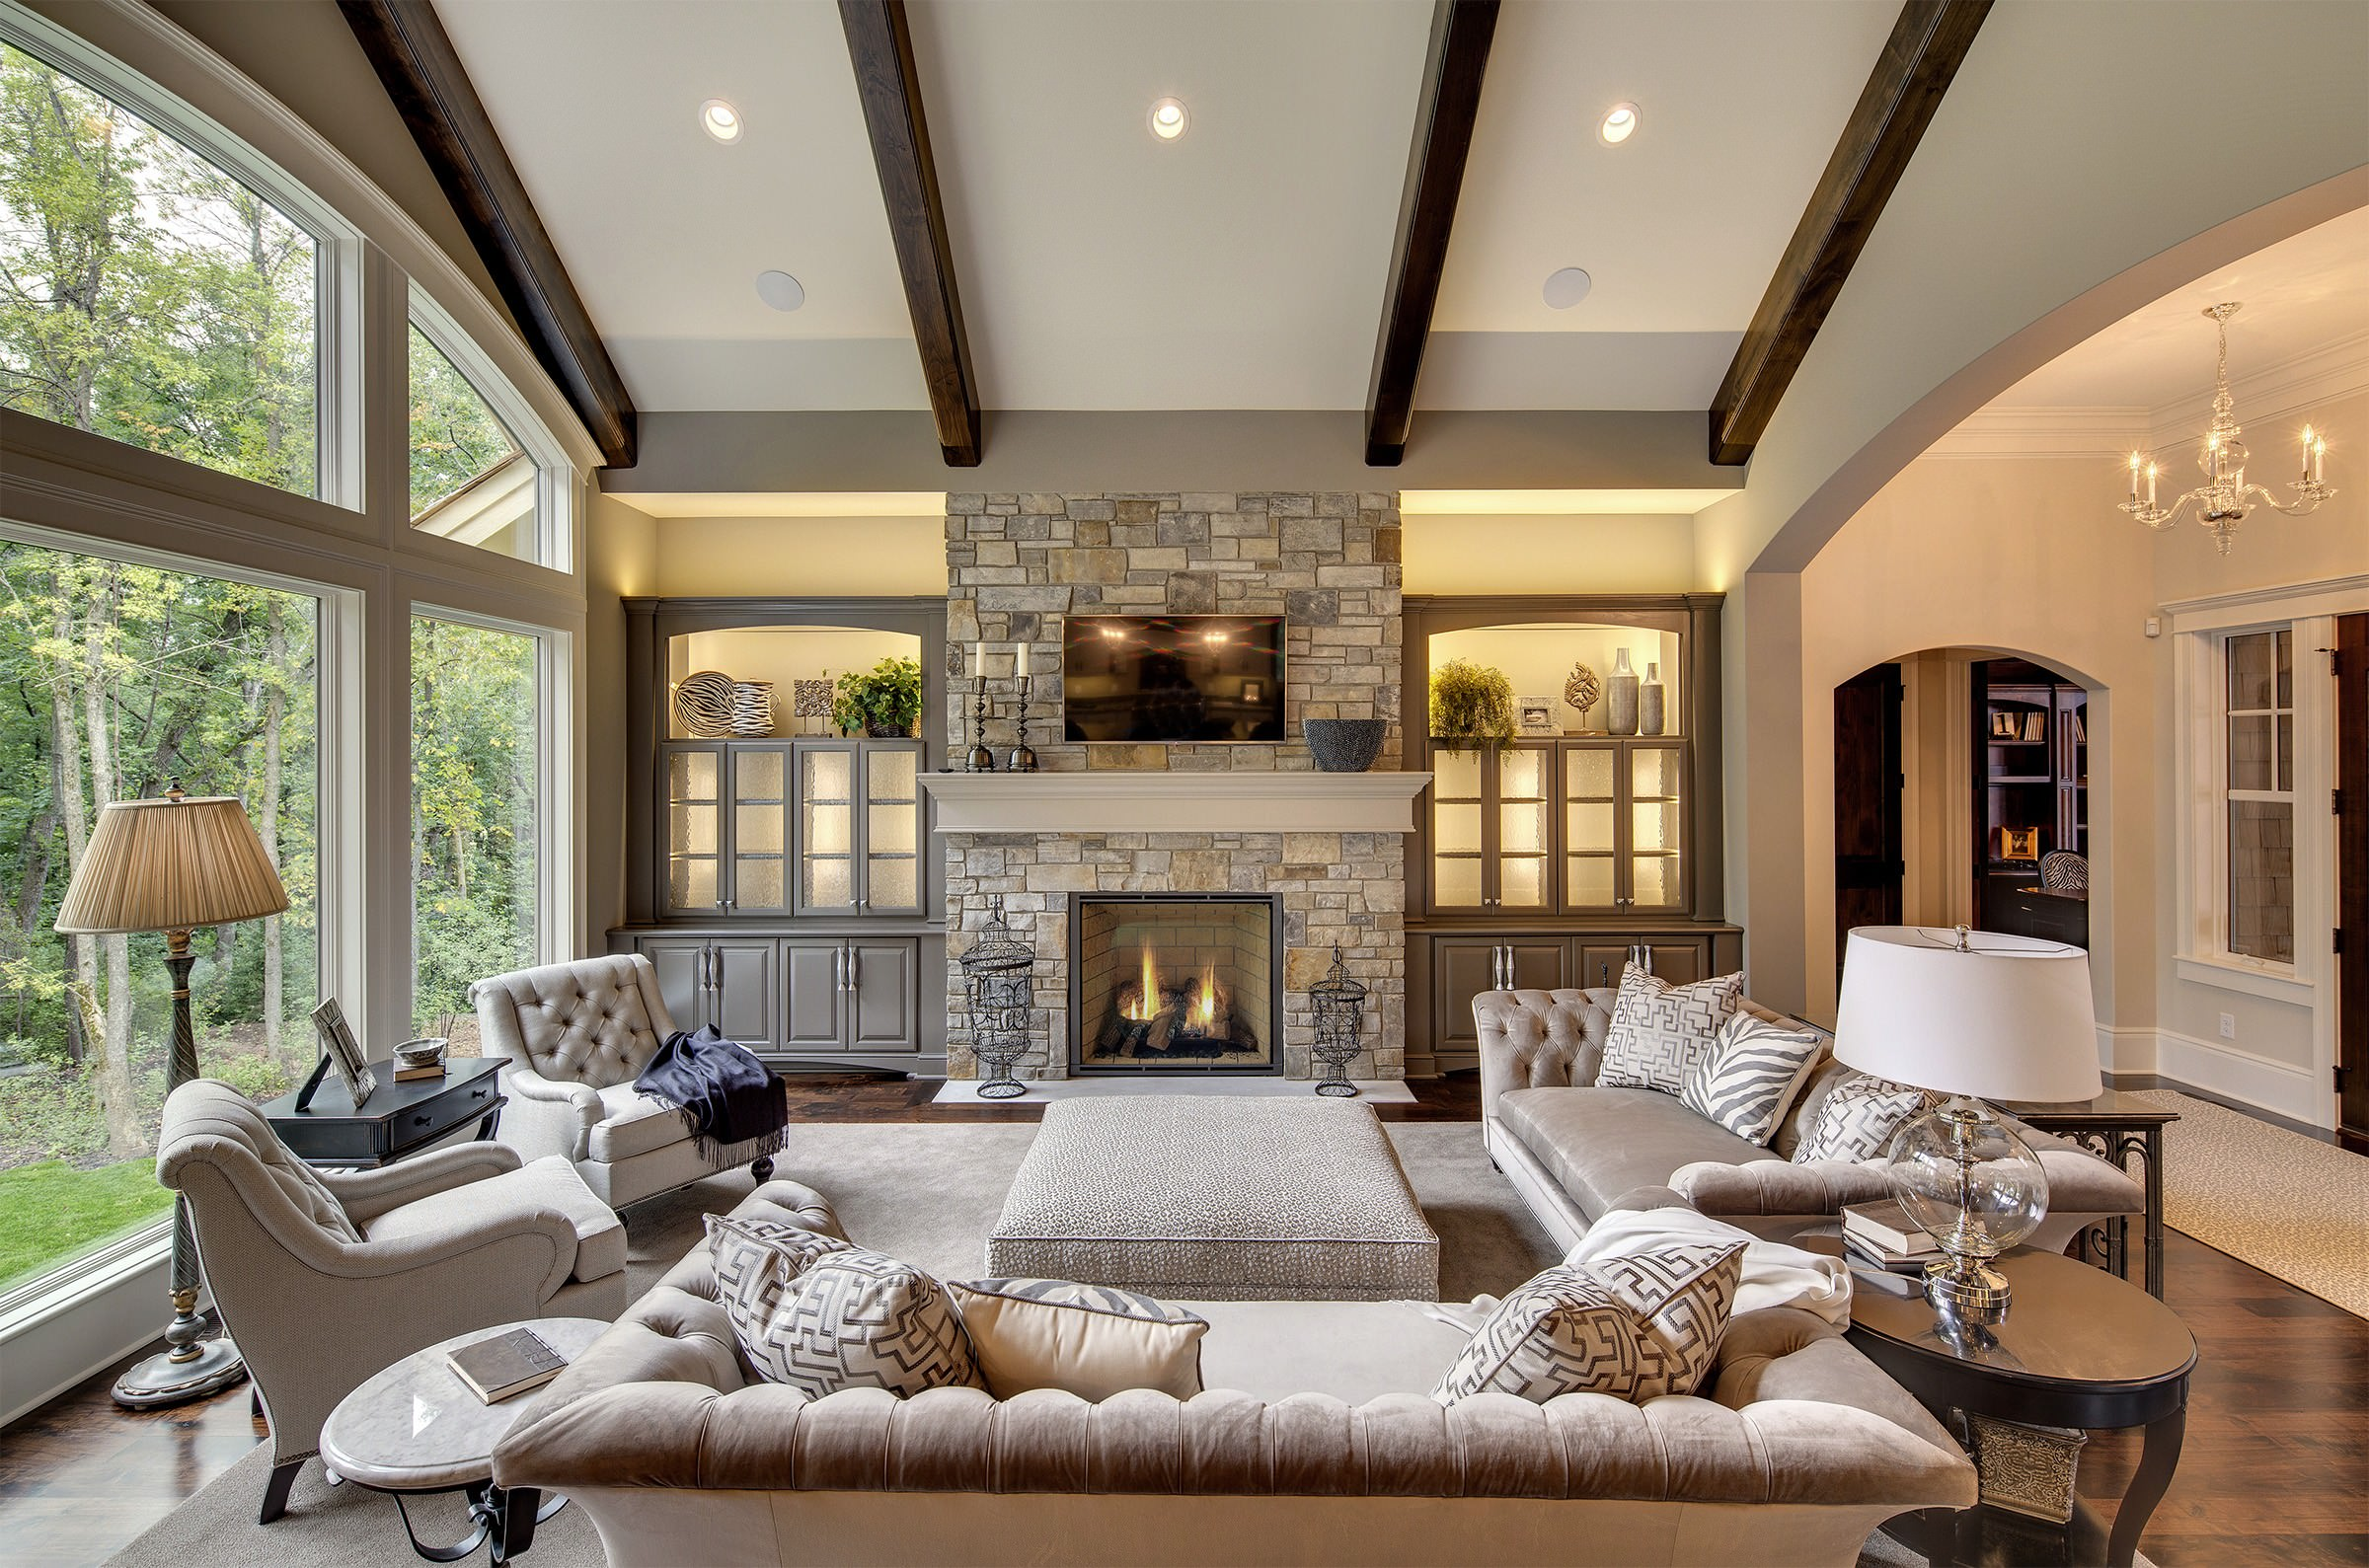 75 Beautiful Traditional Family Room Pictures Ideas February 2021 Houzz